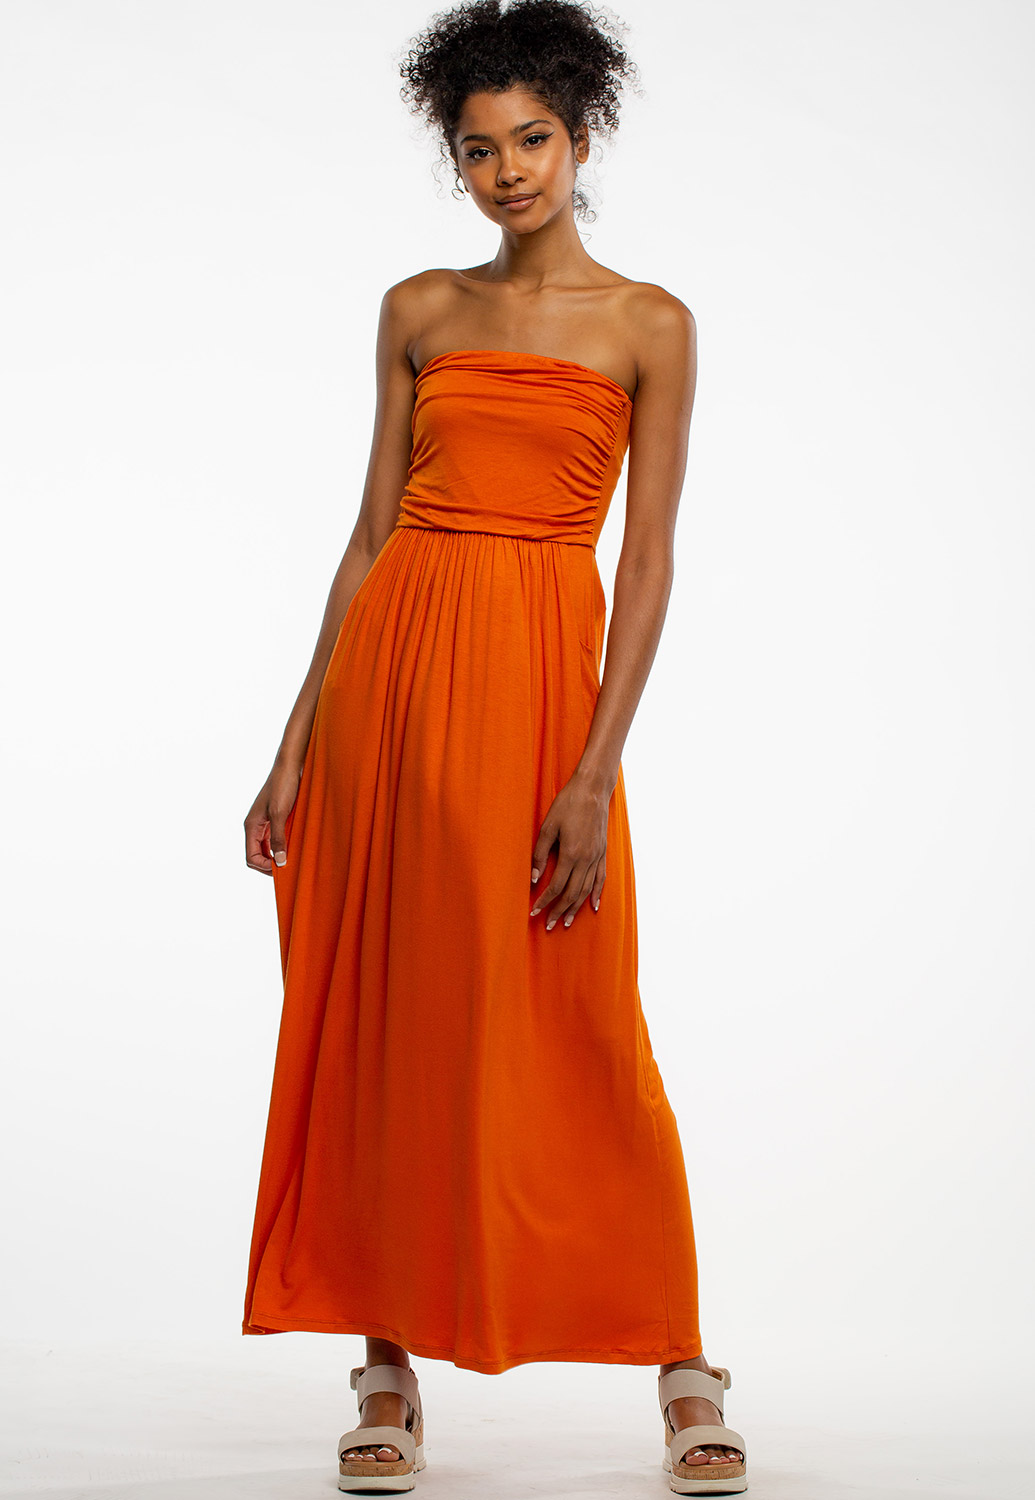 Sleeveless Summer Casual Maxi Dress